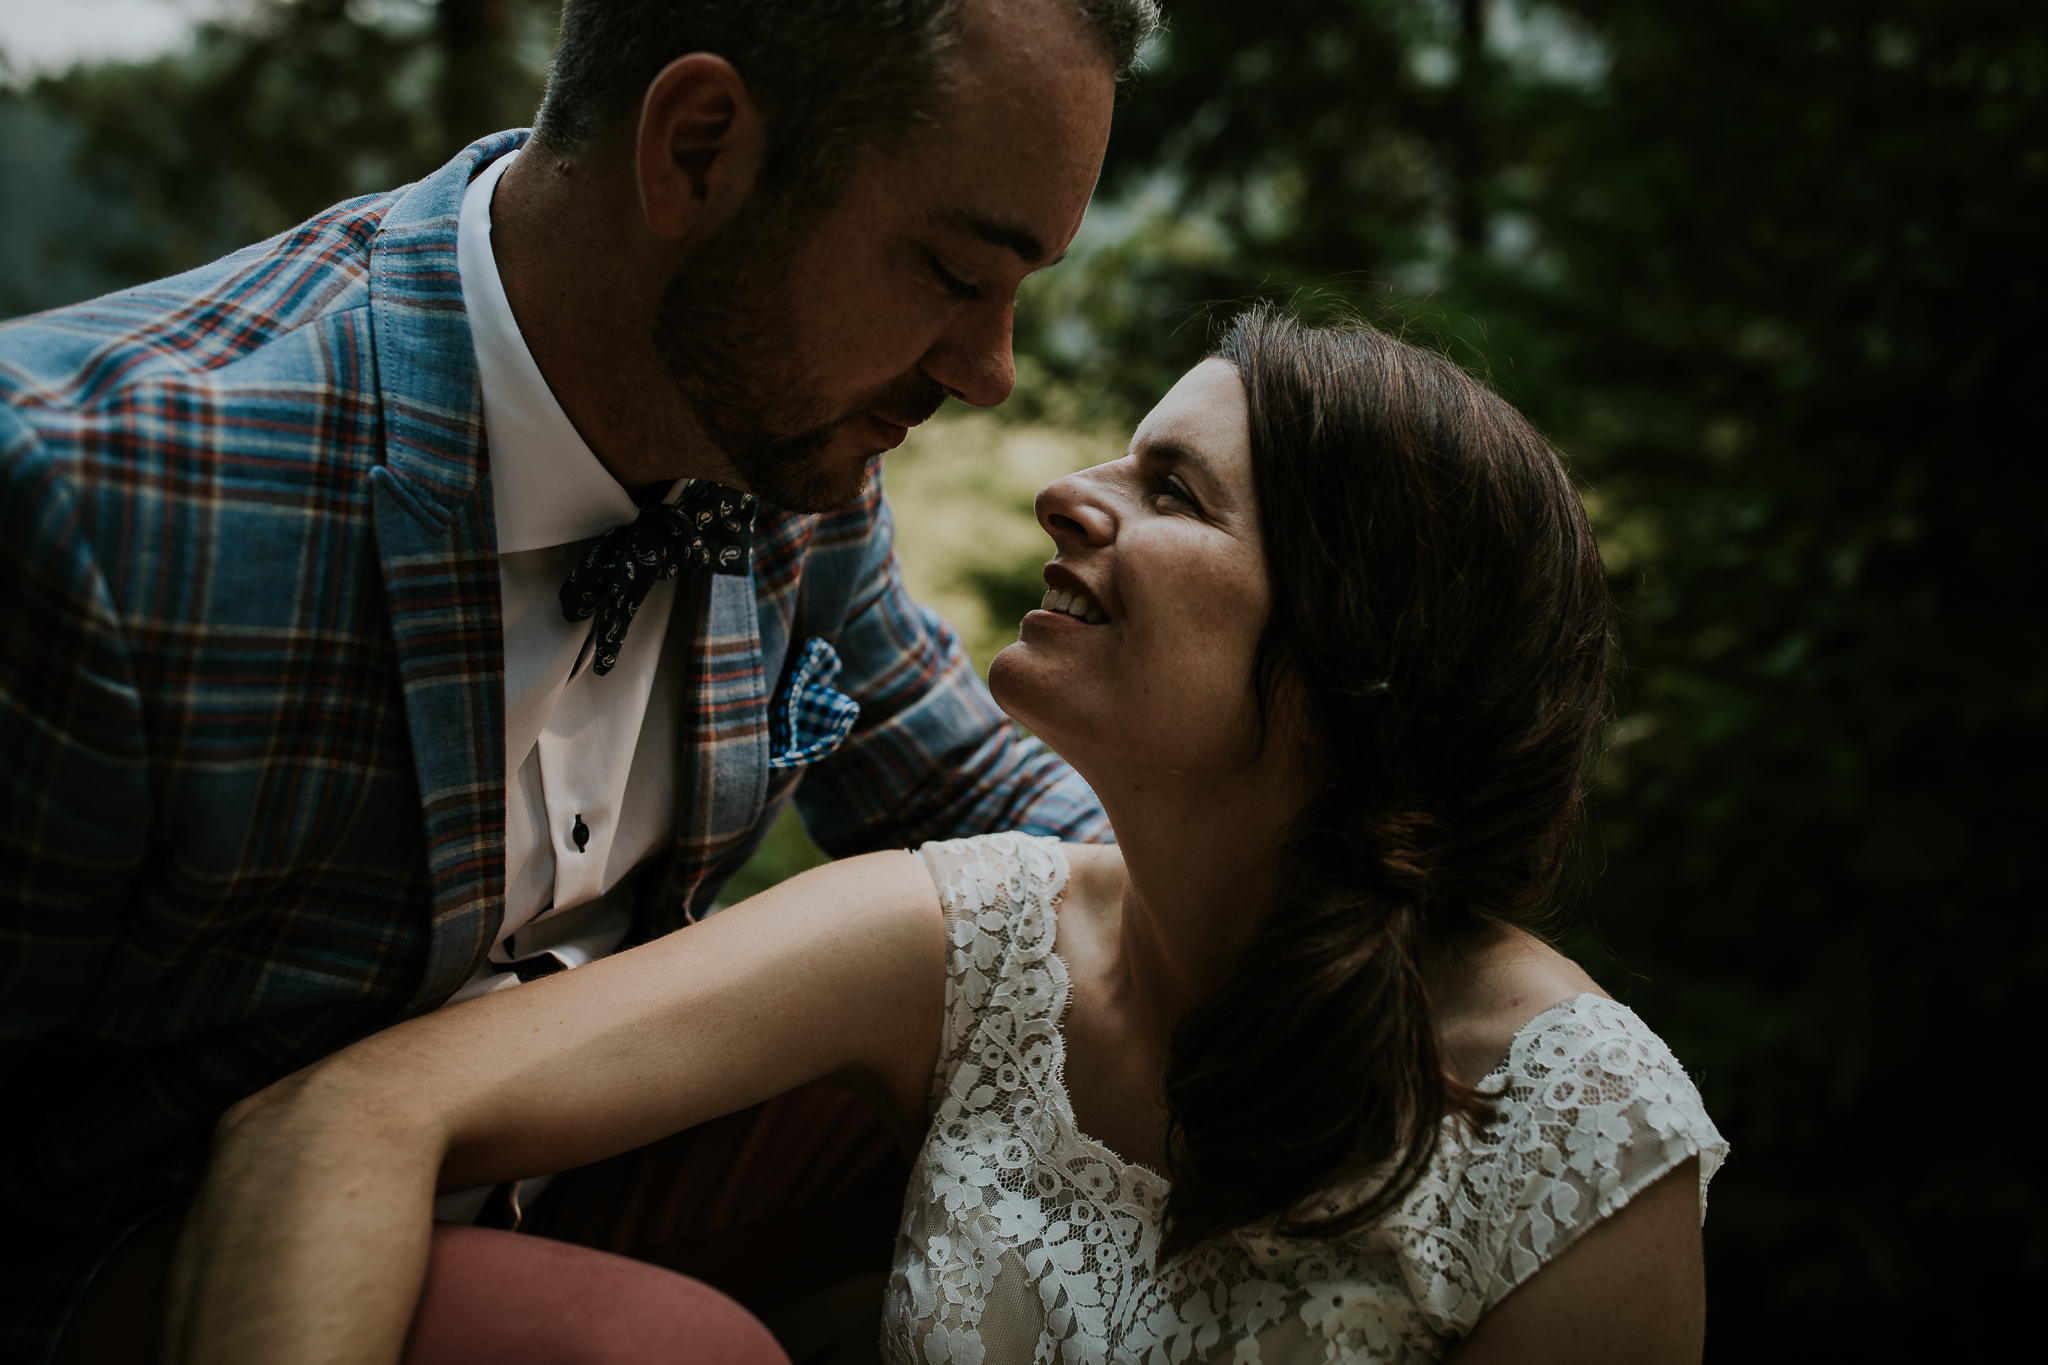 20170805-adventureelopementphotographercanada-canadaadventureelopement-adventureweddingphotographer-cedarlakewedding-goldenweddingphotographer-Rob and Dee-4658.jpg